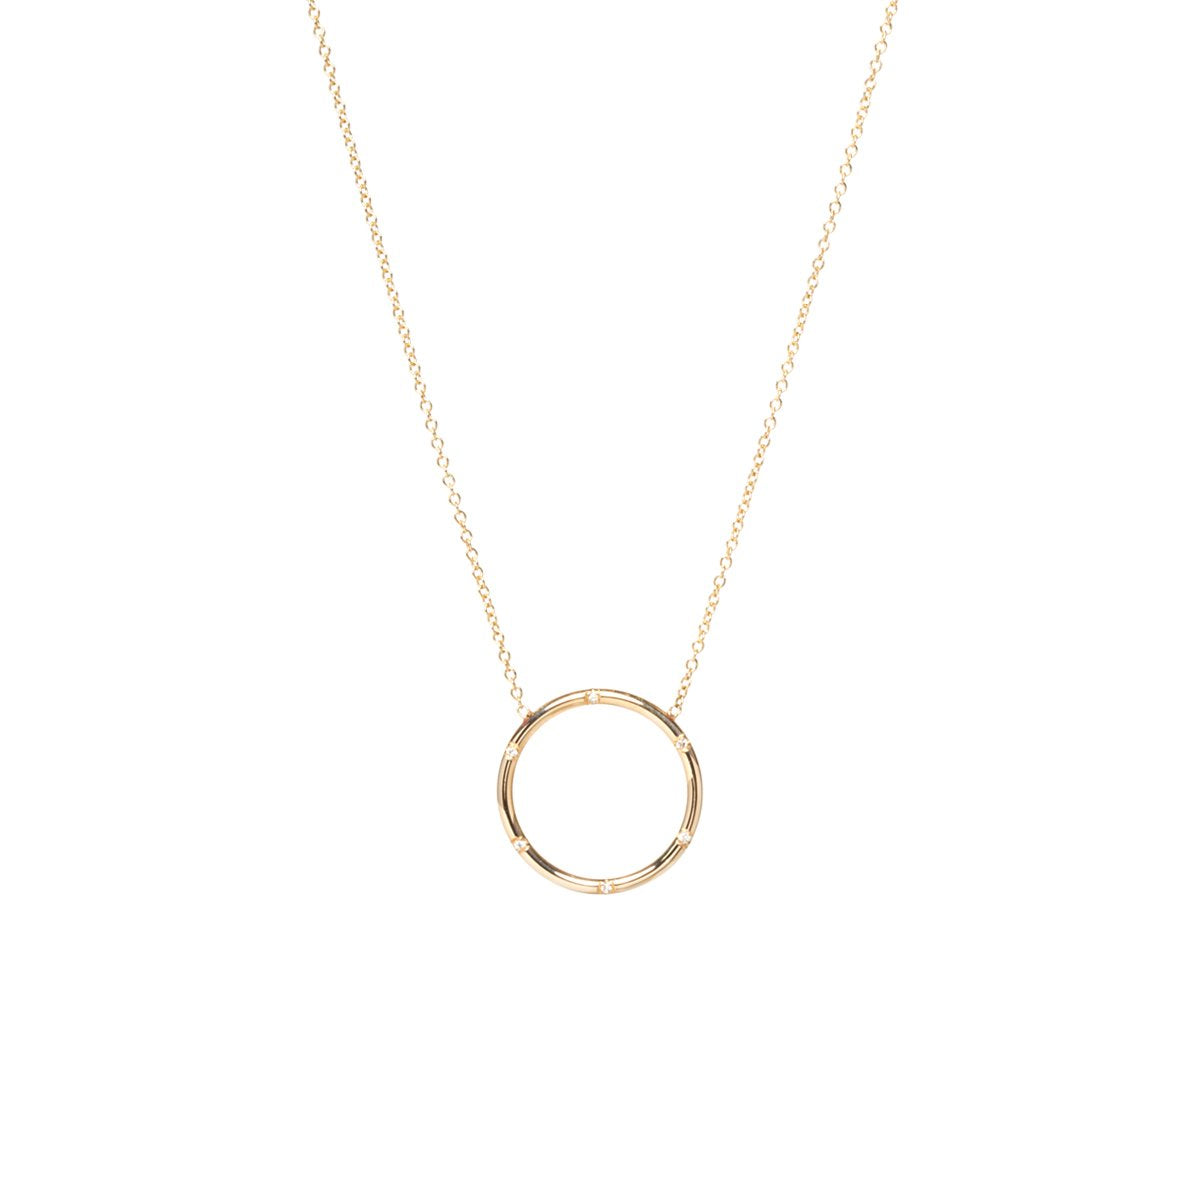 Zoe Chicco 14K Gold Scattered Diamond Necklace